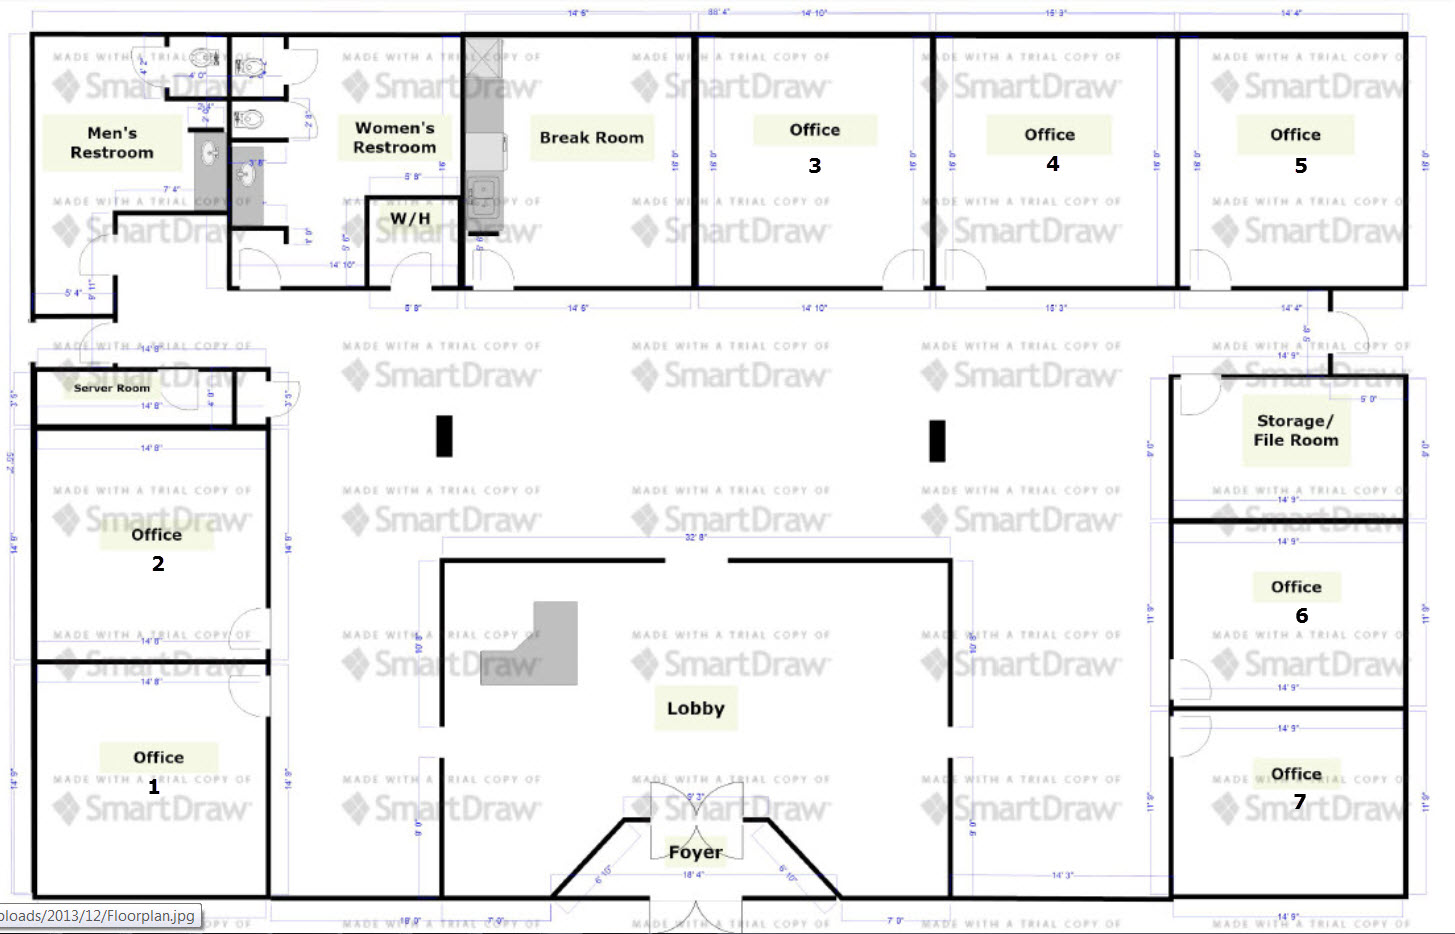 25 best ideas about office plan on pinterest open office Office building floor plan layout